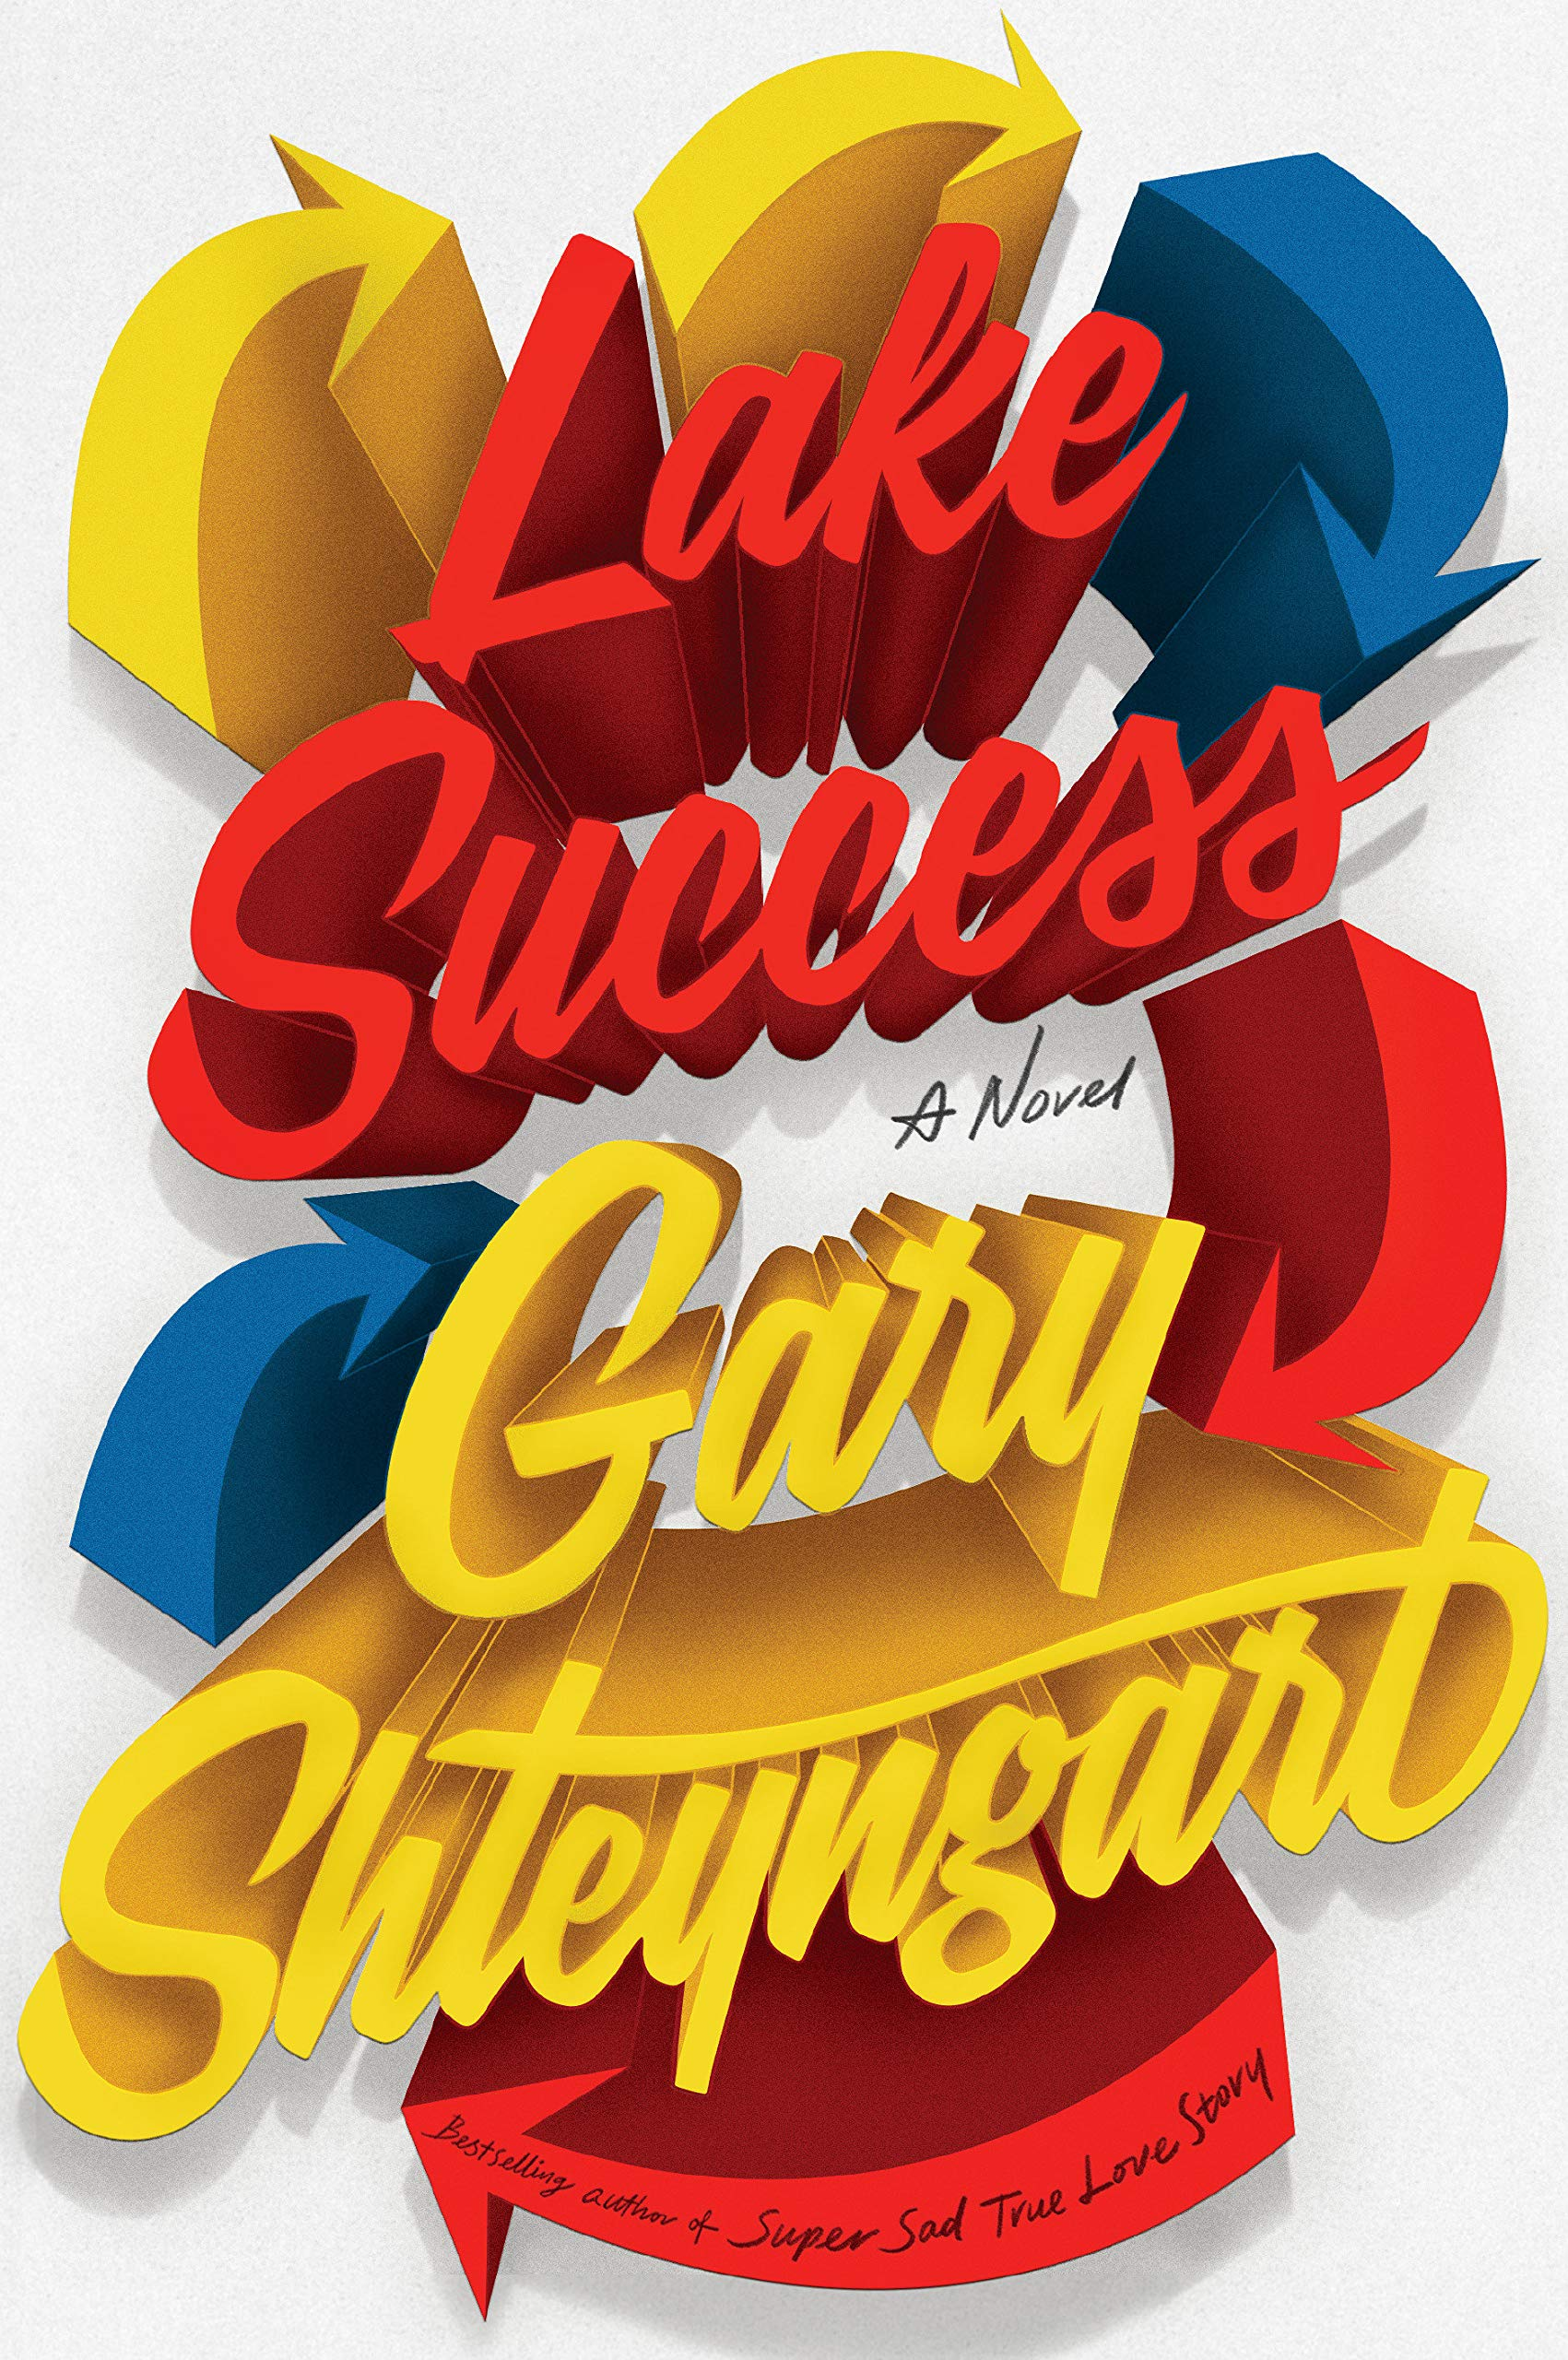 Gary Shteyngart, <em>Lake Success</em>, design by Rodrigo Corrall (Random House)